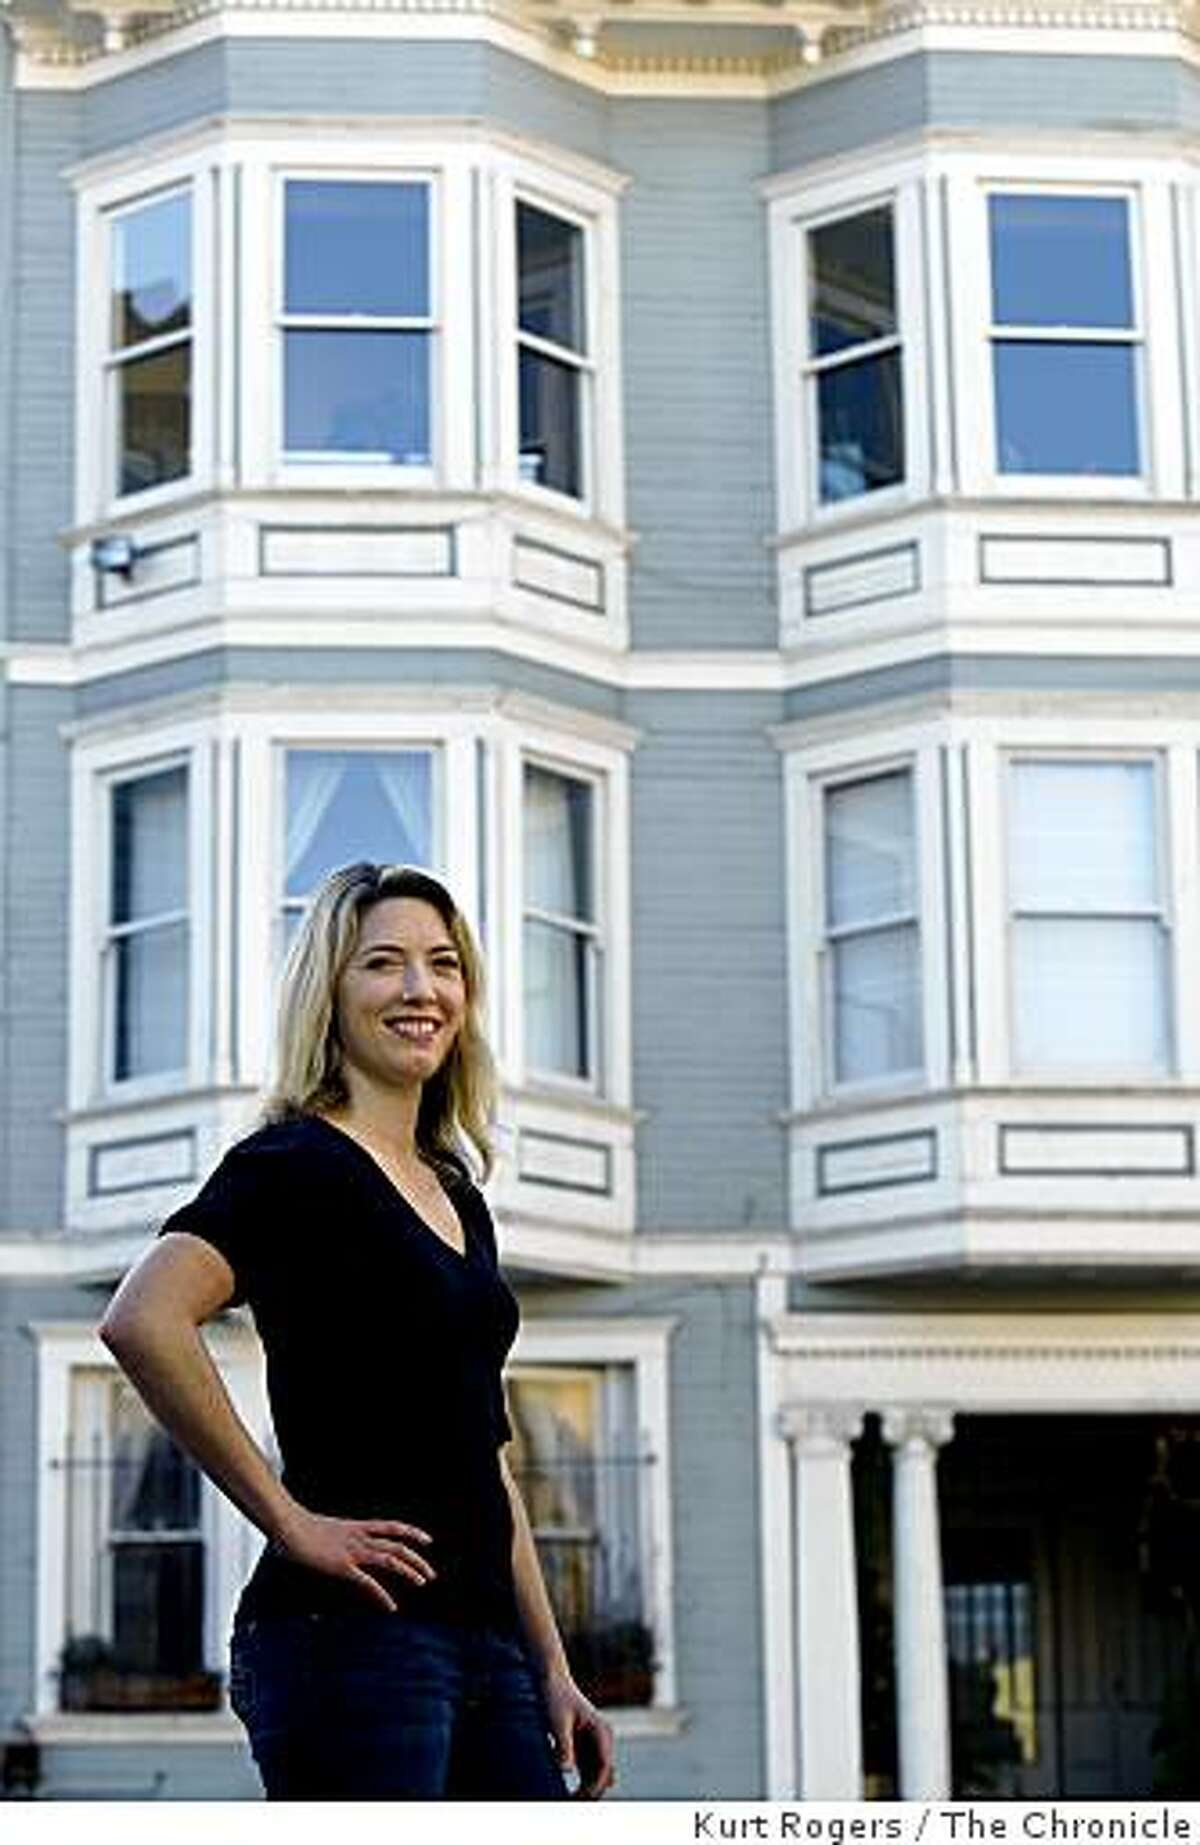 Elizabeth Johnson poses front of her condo building on Friday Jan. 30, 2009 in San Francisco, Calif. She and her two coowners are entering the condo lottery for the fifth time next week.